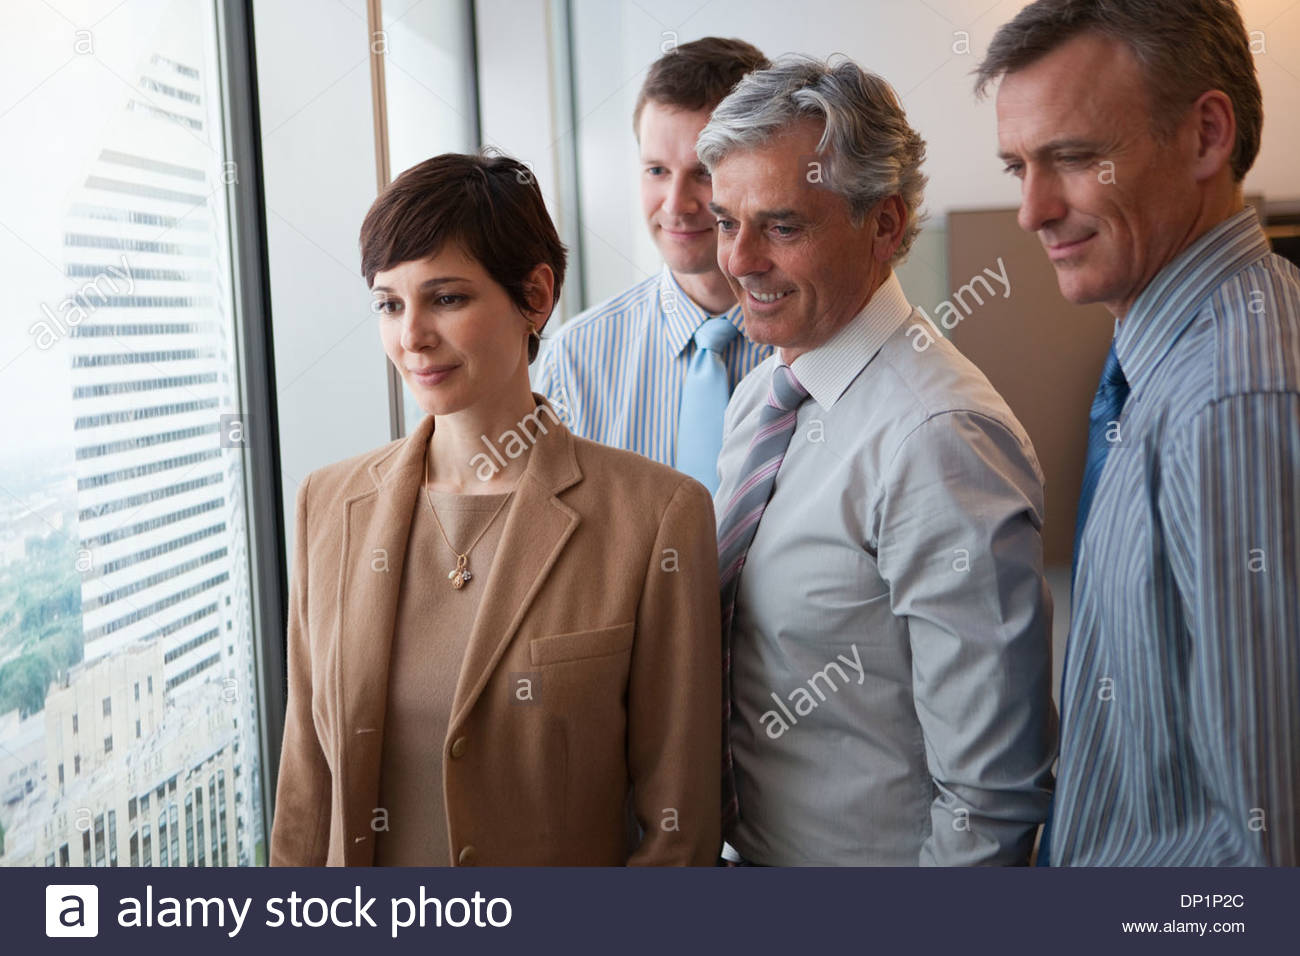 Businesspeople looking out window - Stock Image